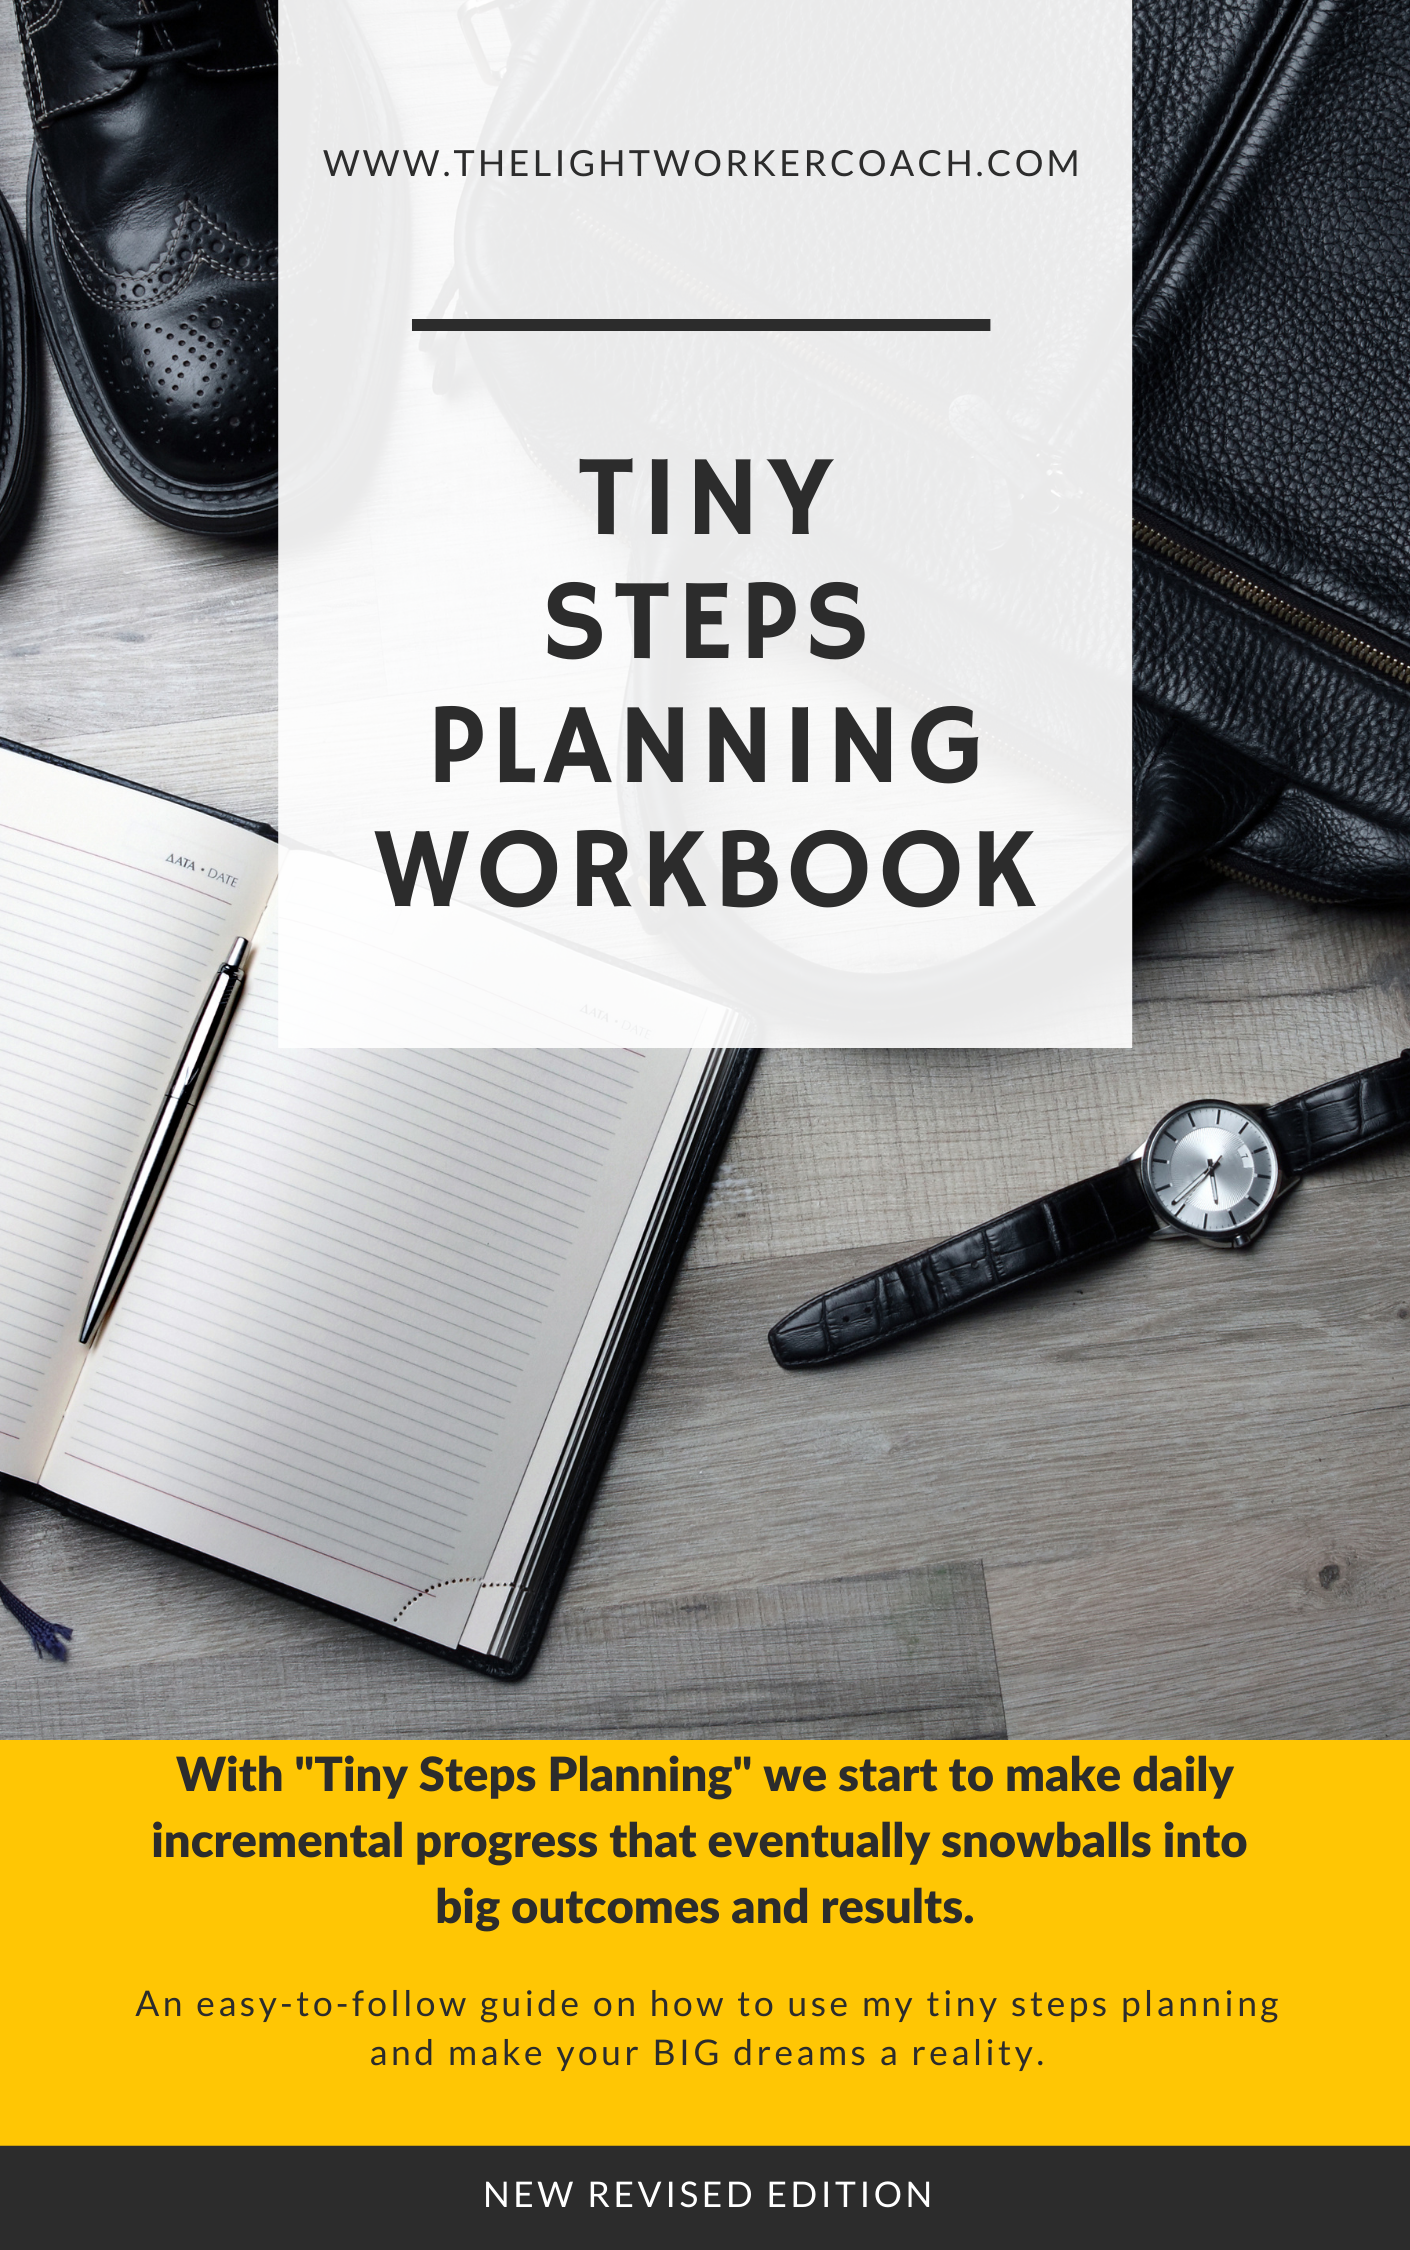 Tiny Steps Planning Workbooks